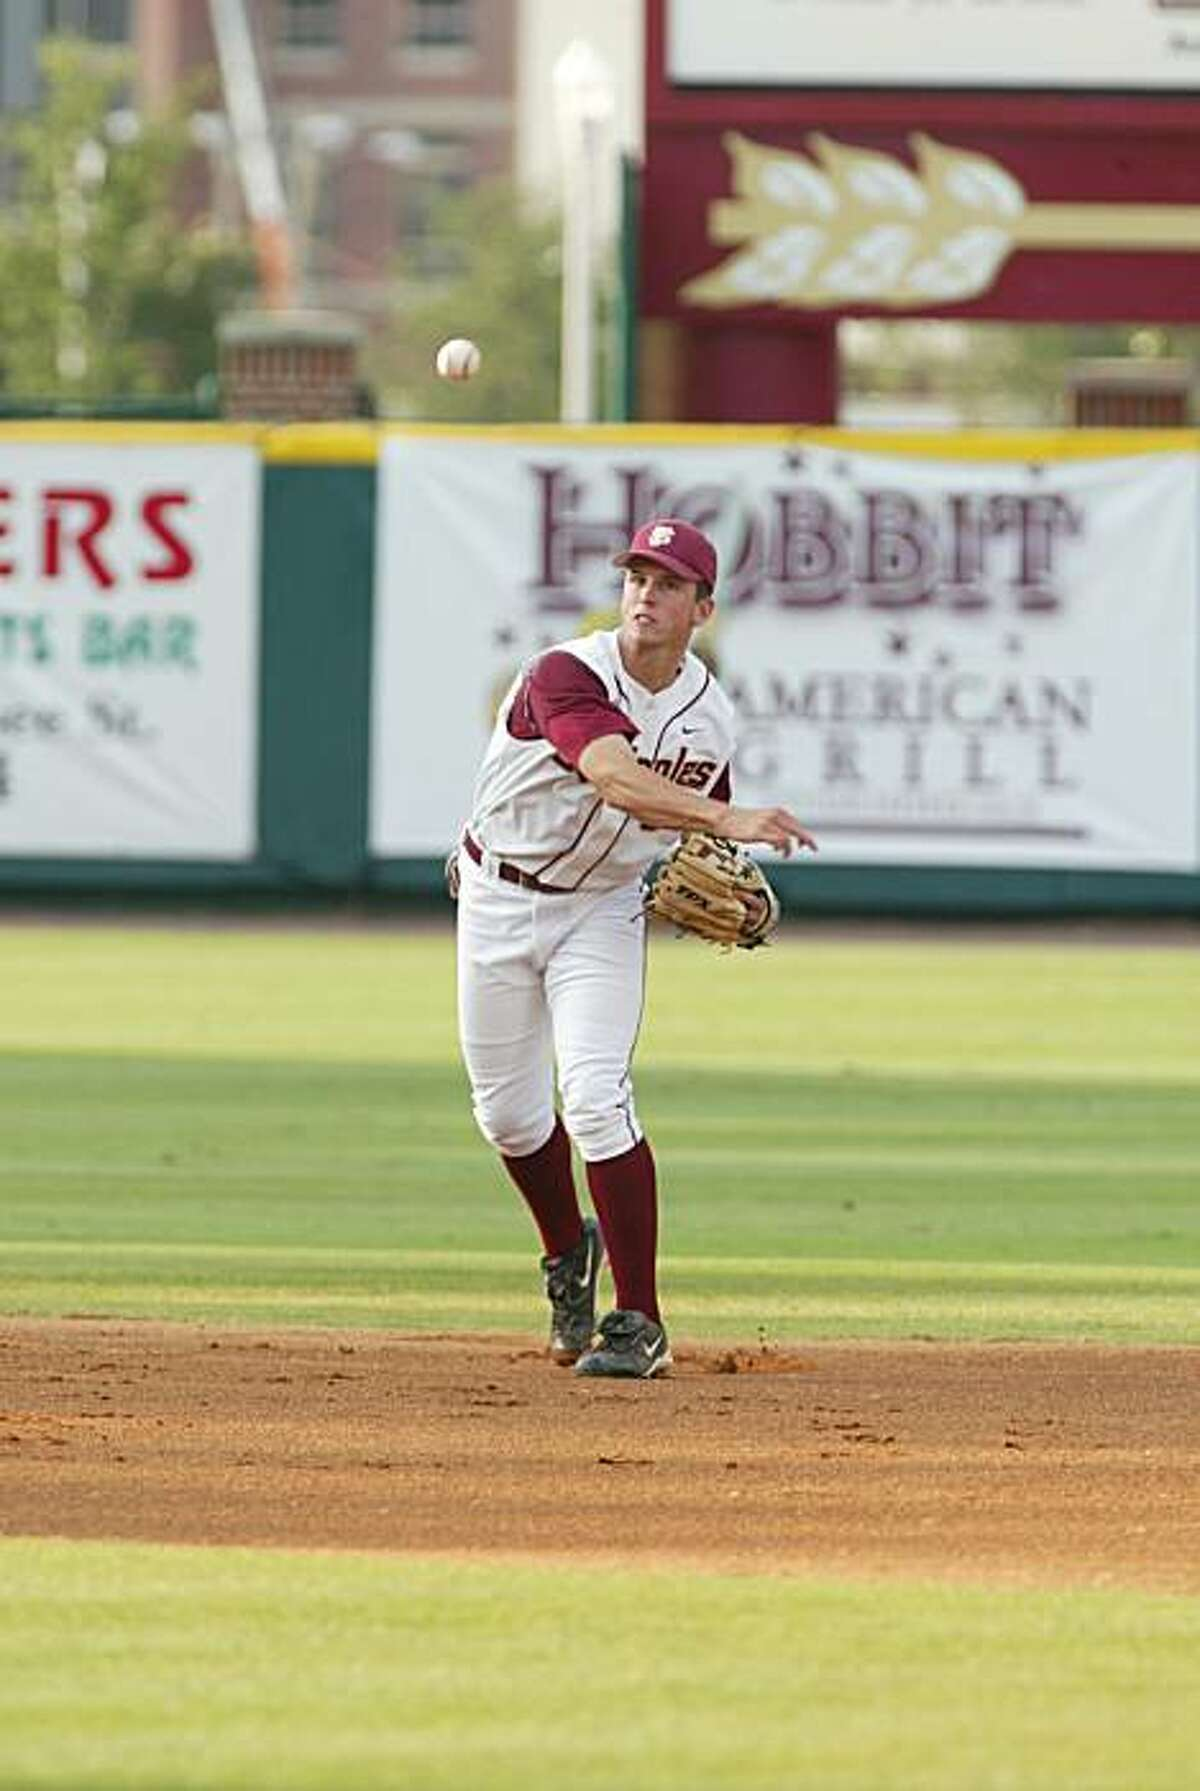 Buster Posey, playing shortstop for Florida State.